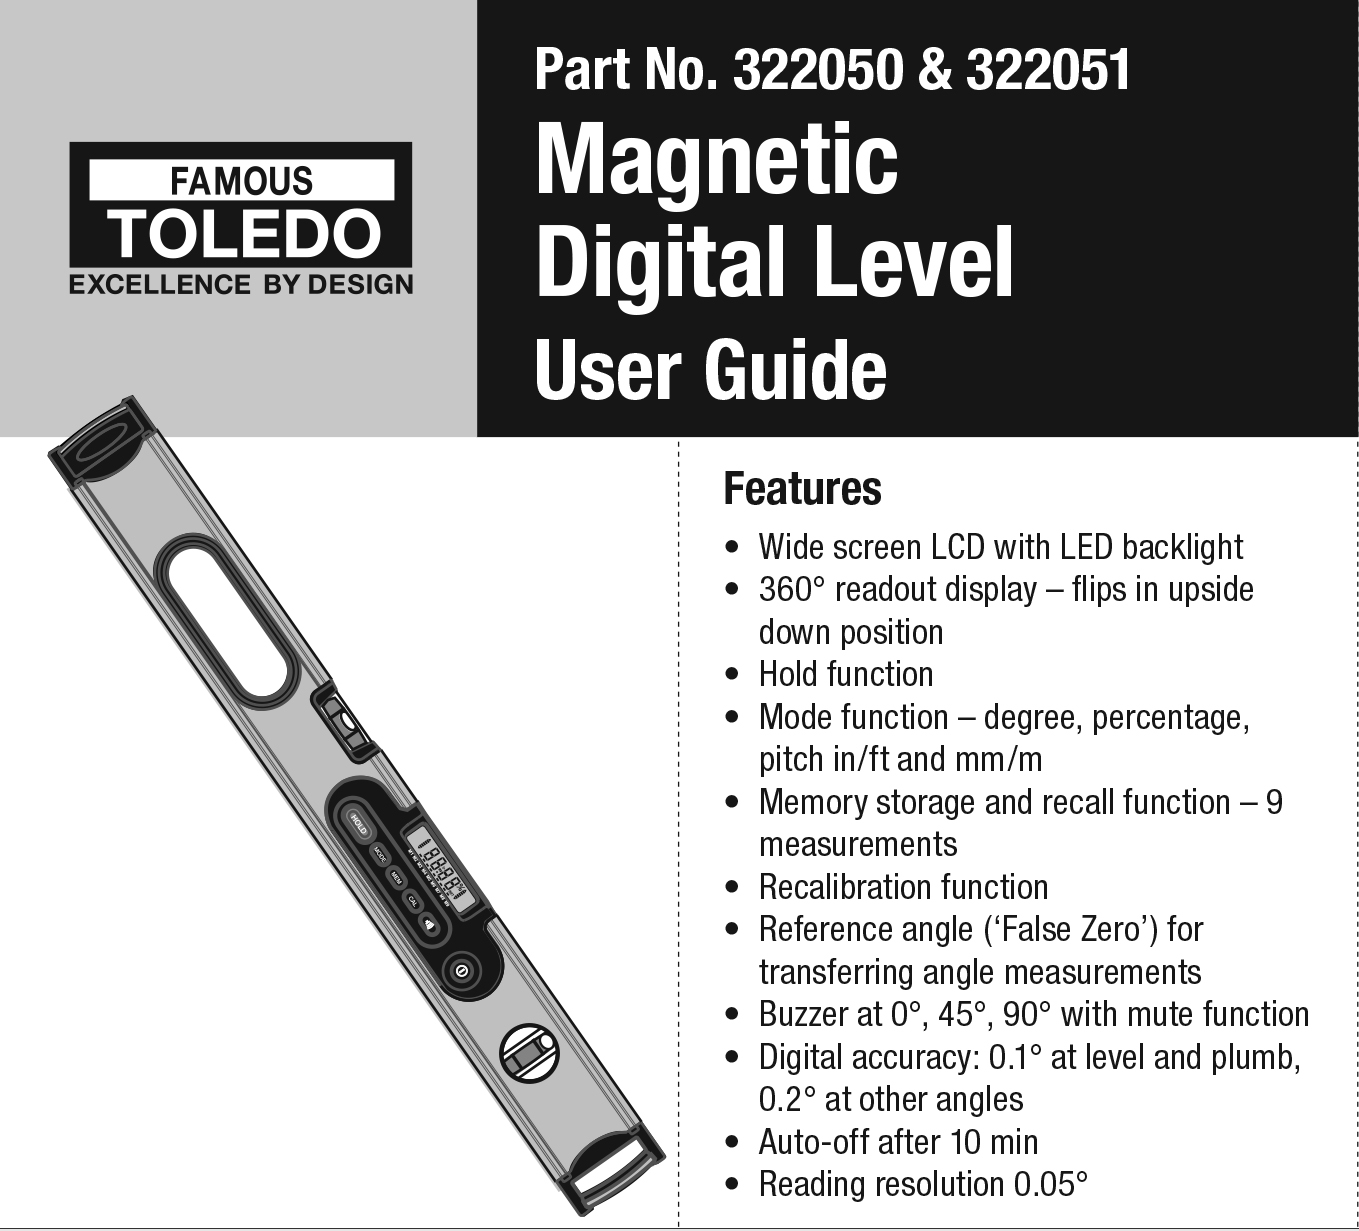 322050 & 322051 Magnetic Digital Level - User Guide